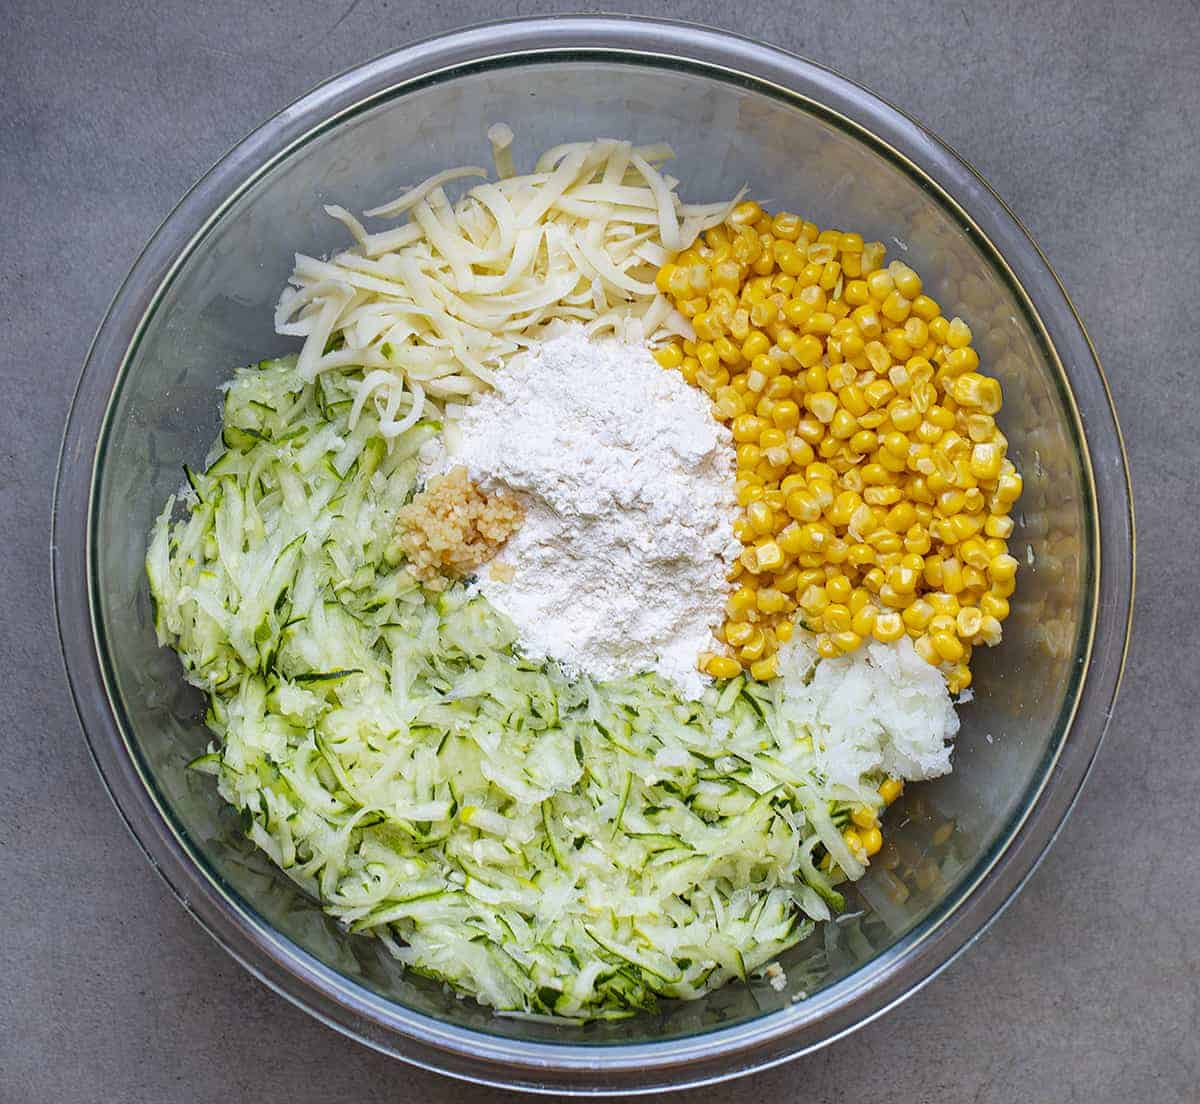 Raw Ingredients in a Bowl that Go into Zucchini Fritters